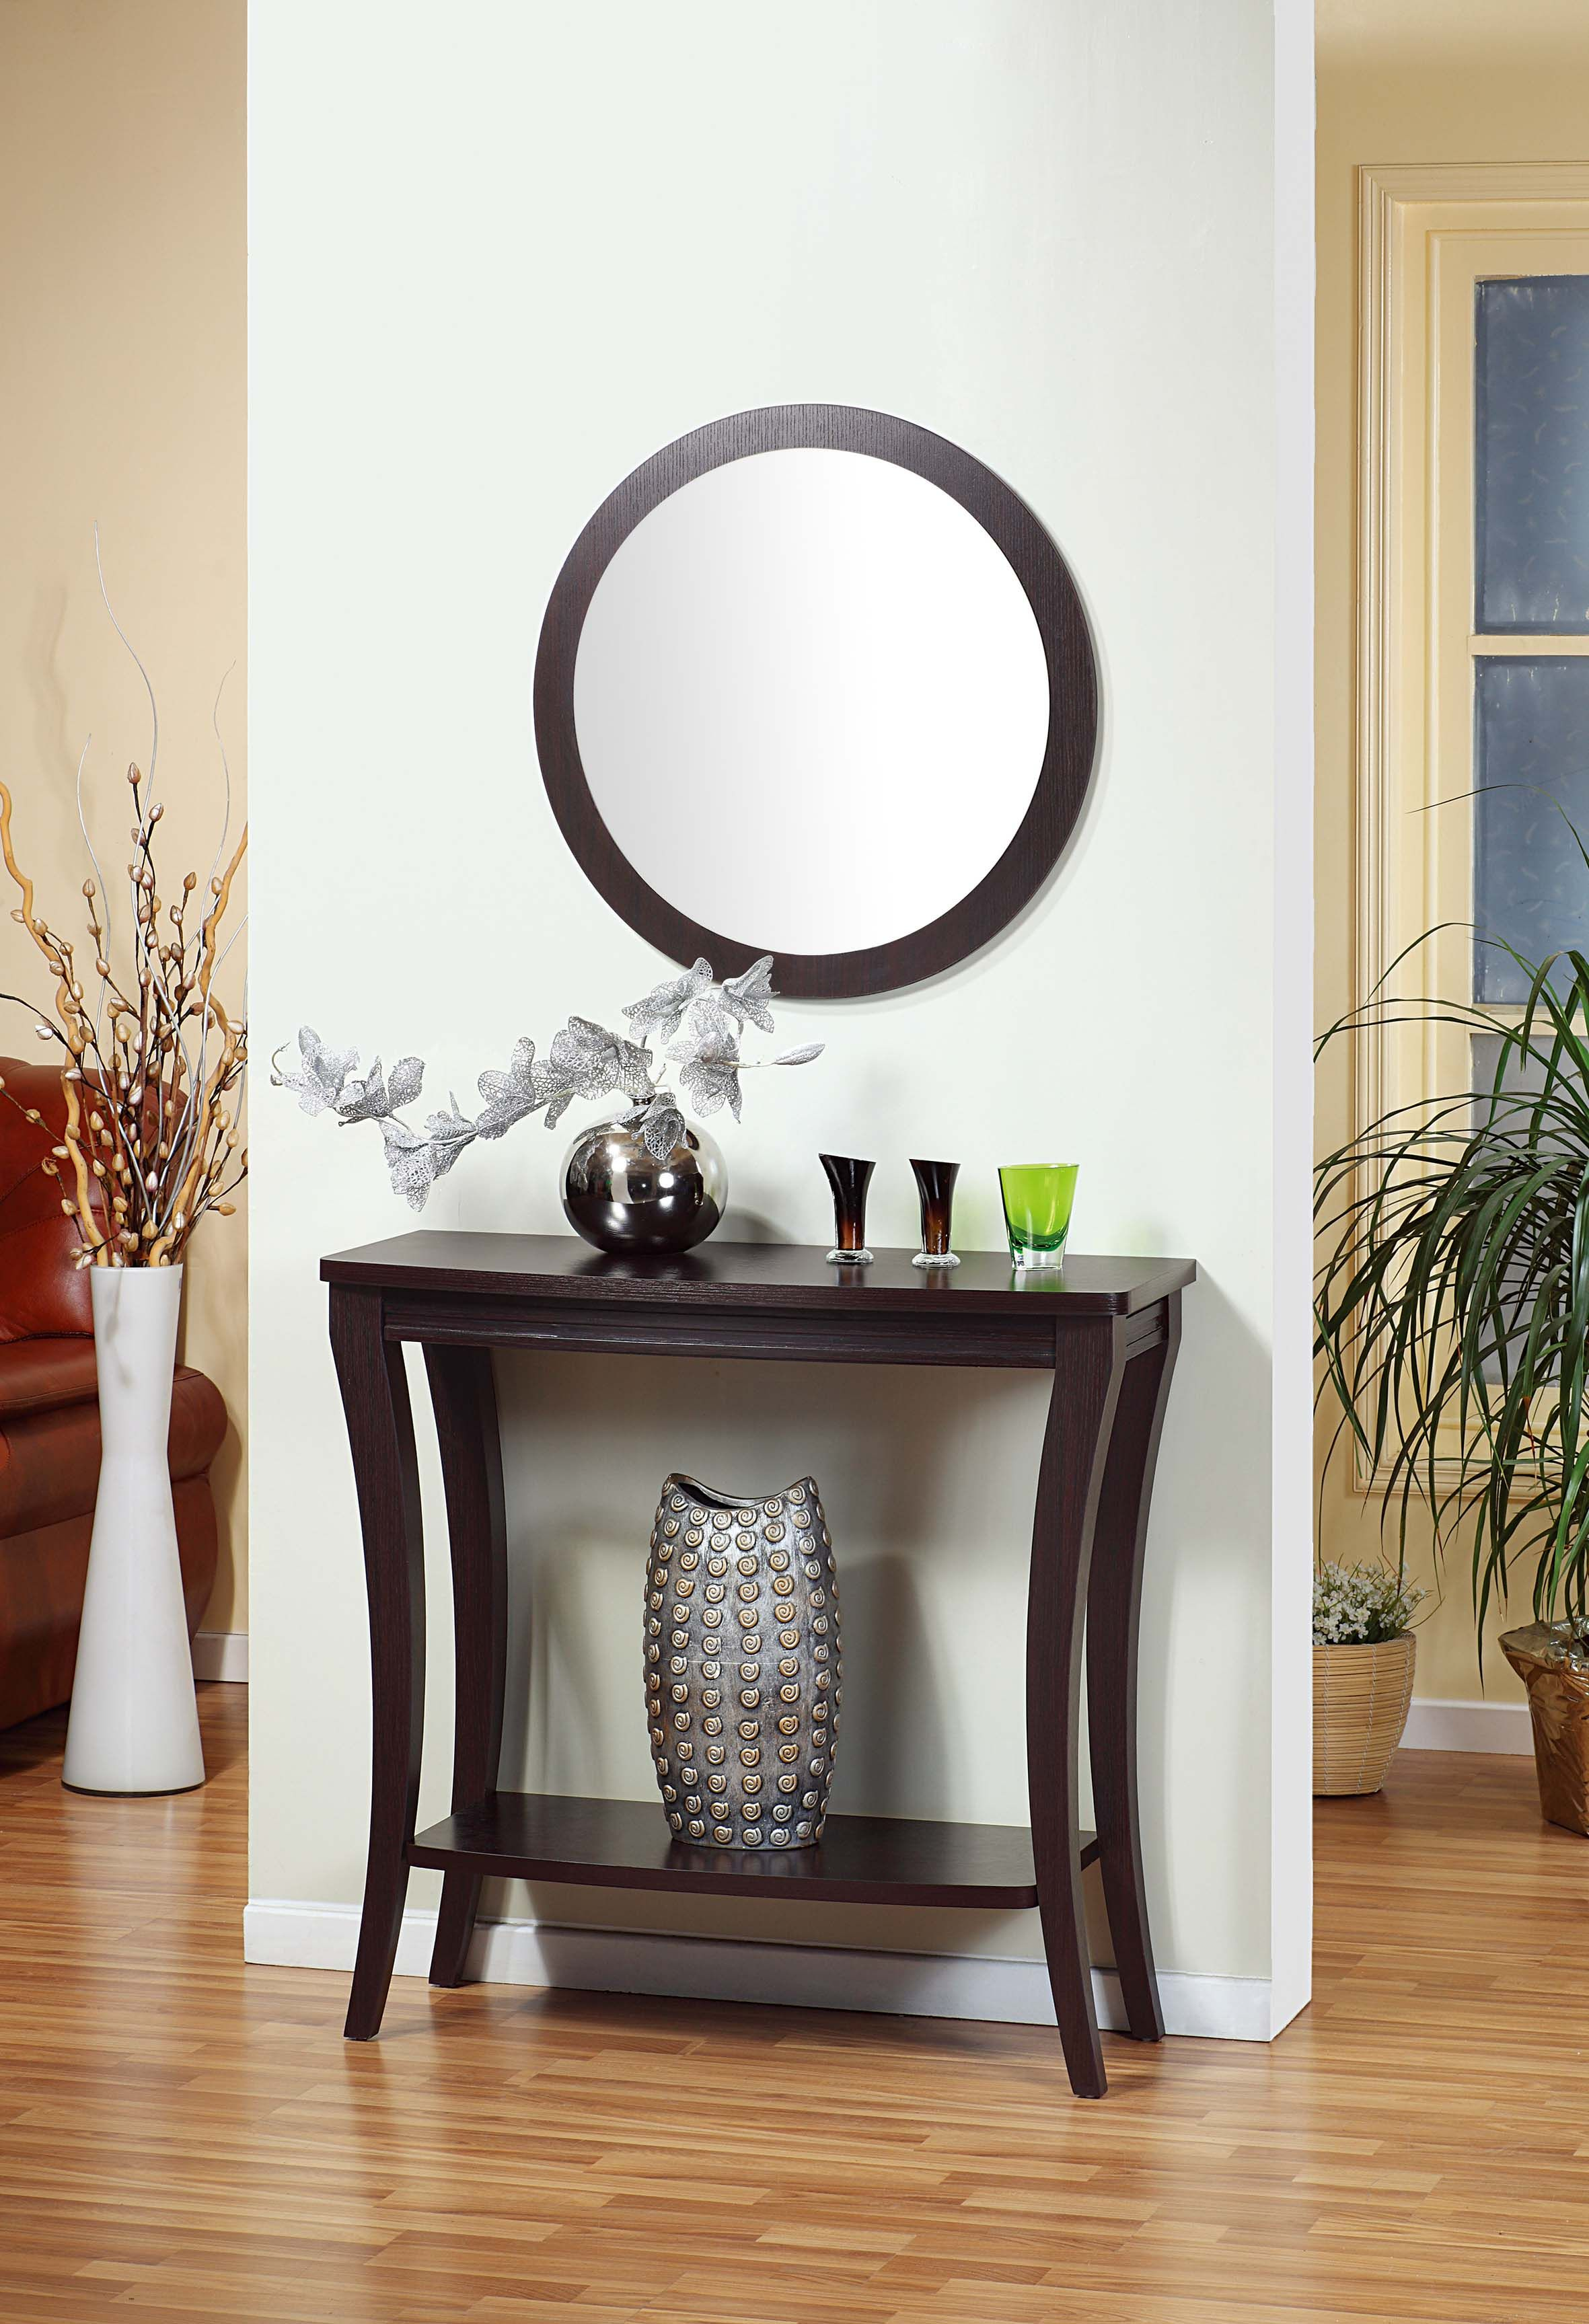 13707 Smart Home Modern Hallway Console Table Features An All